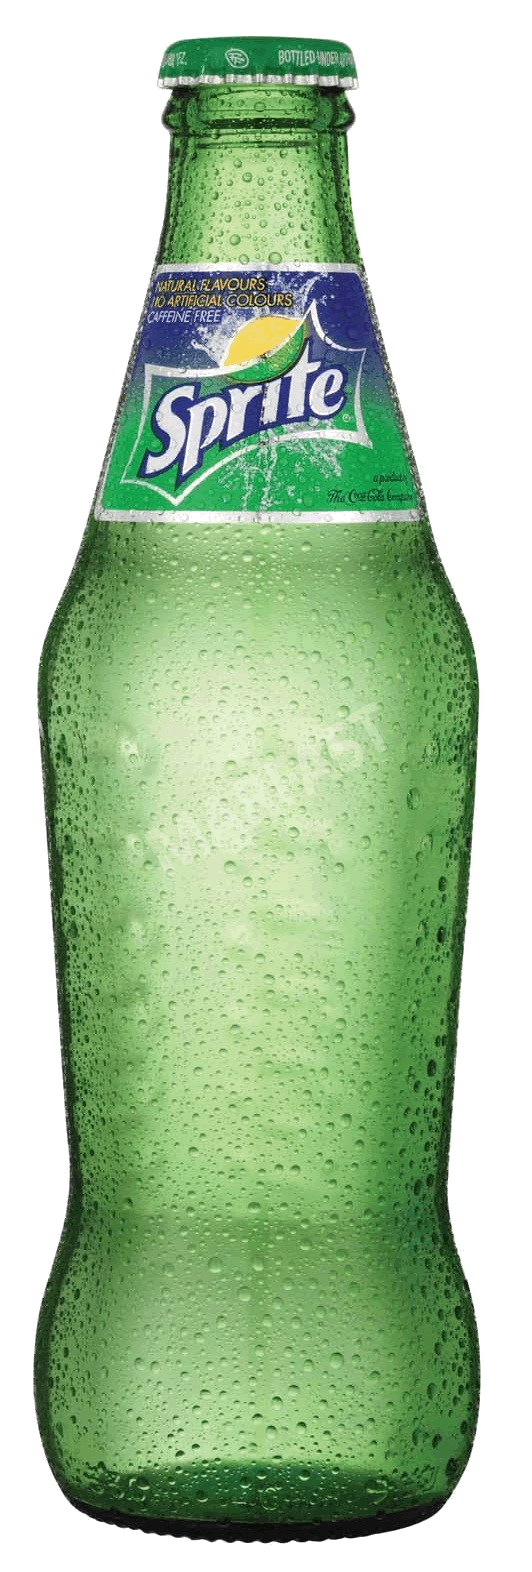 Sprite to png. Bottle images can image